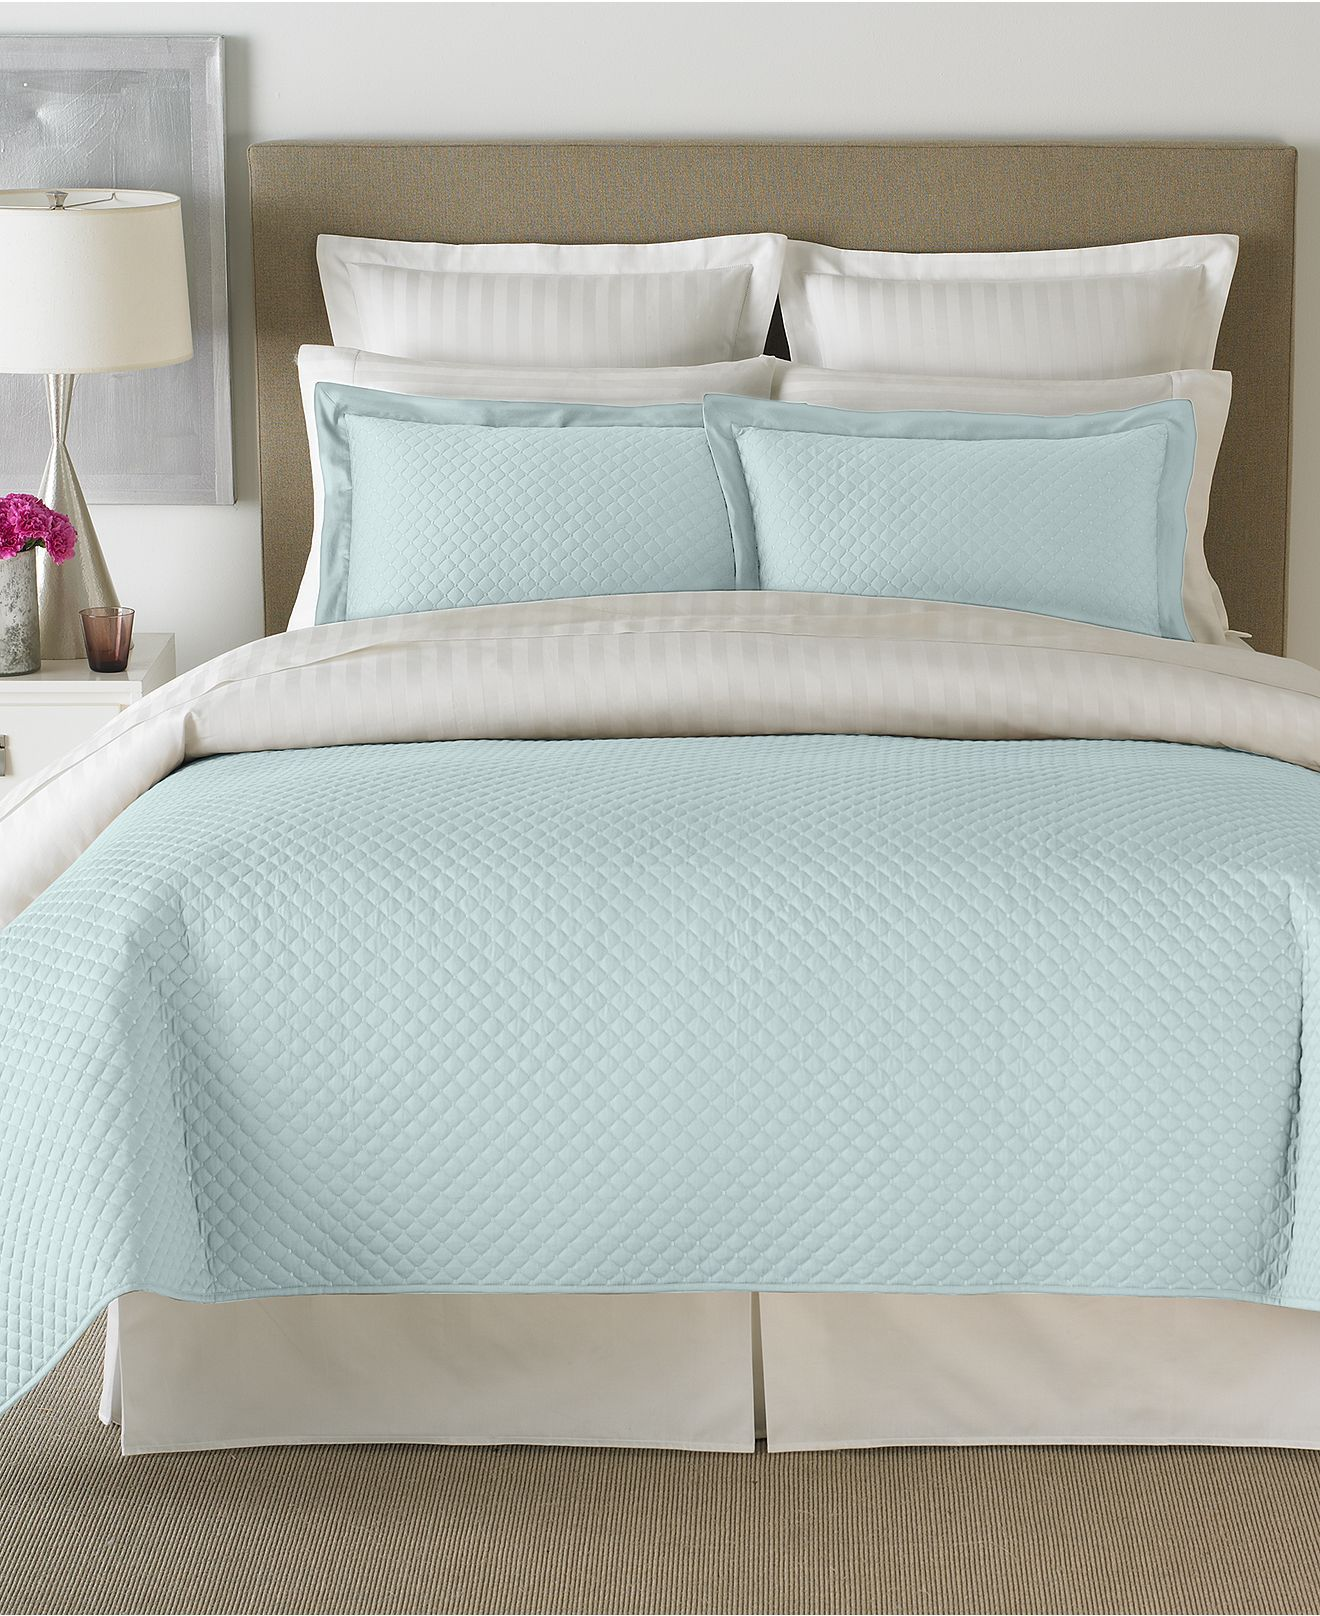 20 Macys Charter Club Sheets Pictures And Ideas On Meta Networks